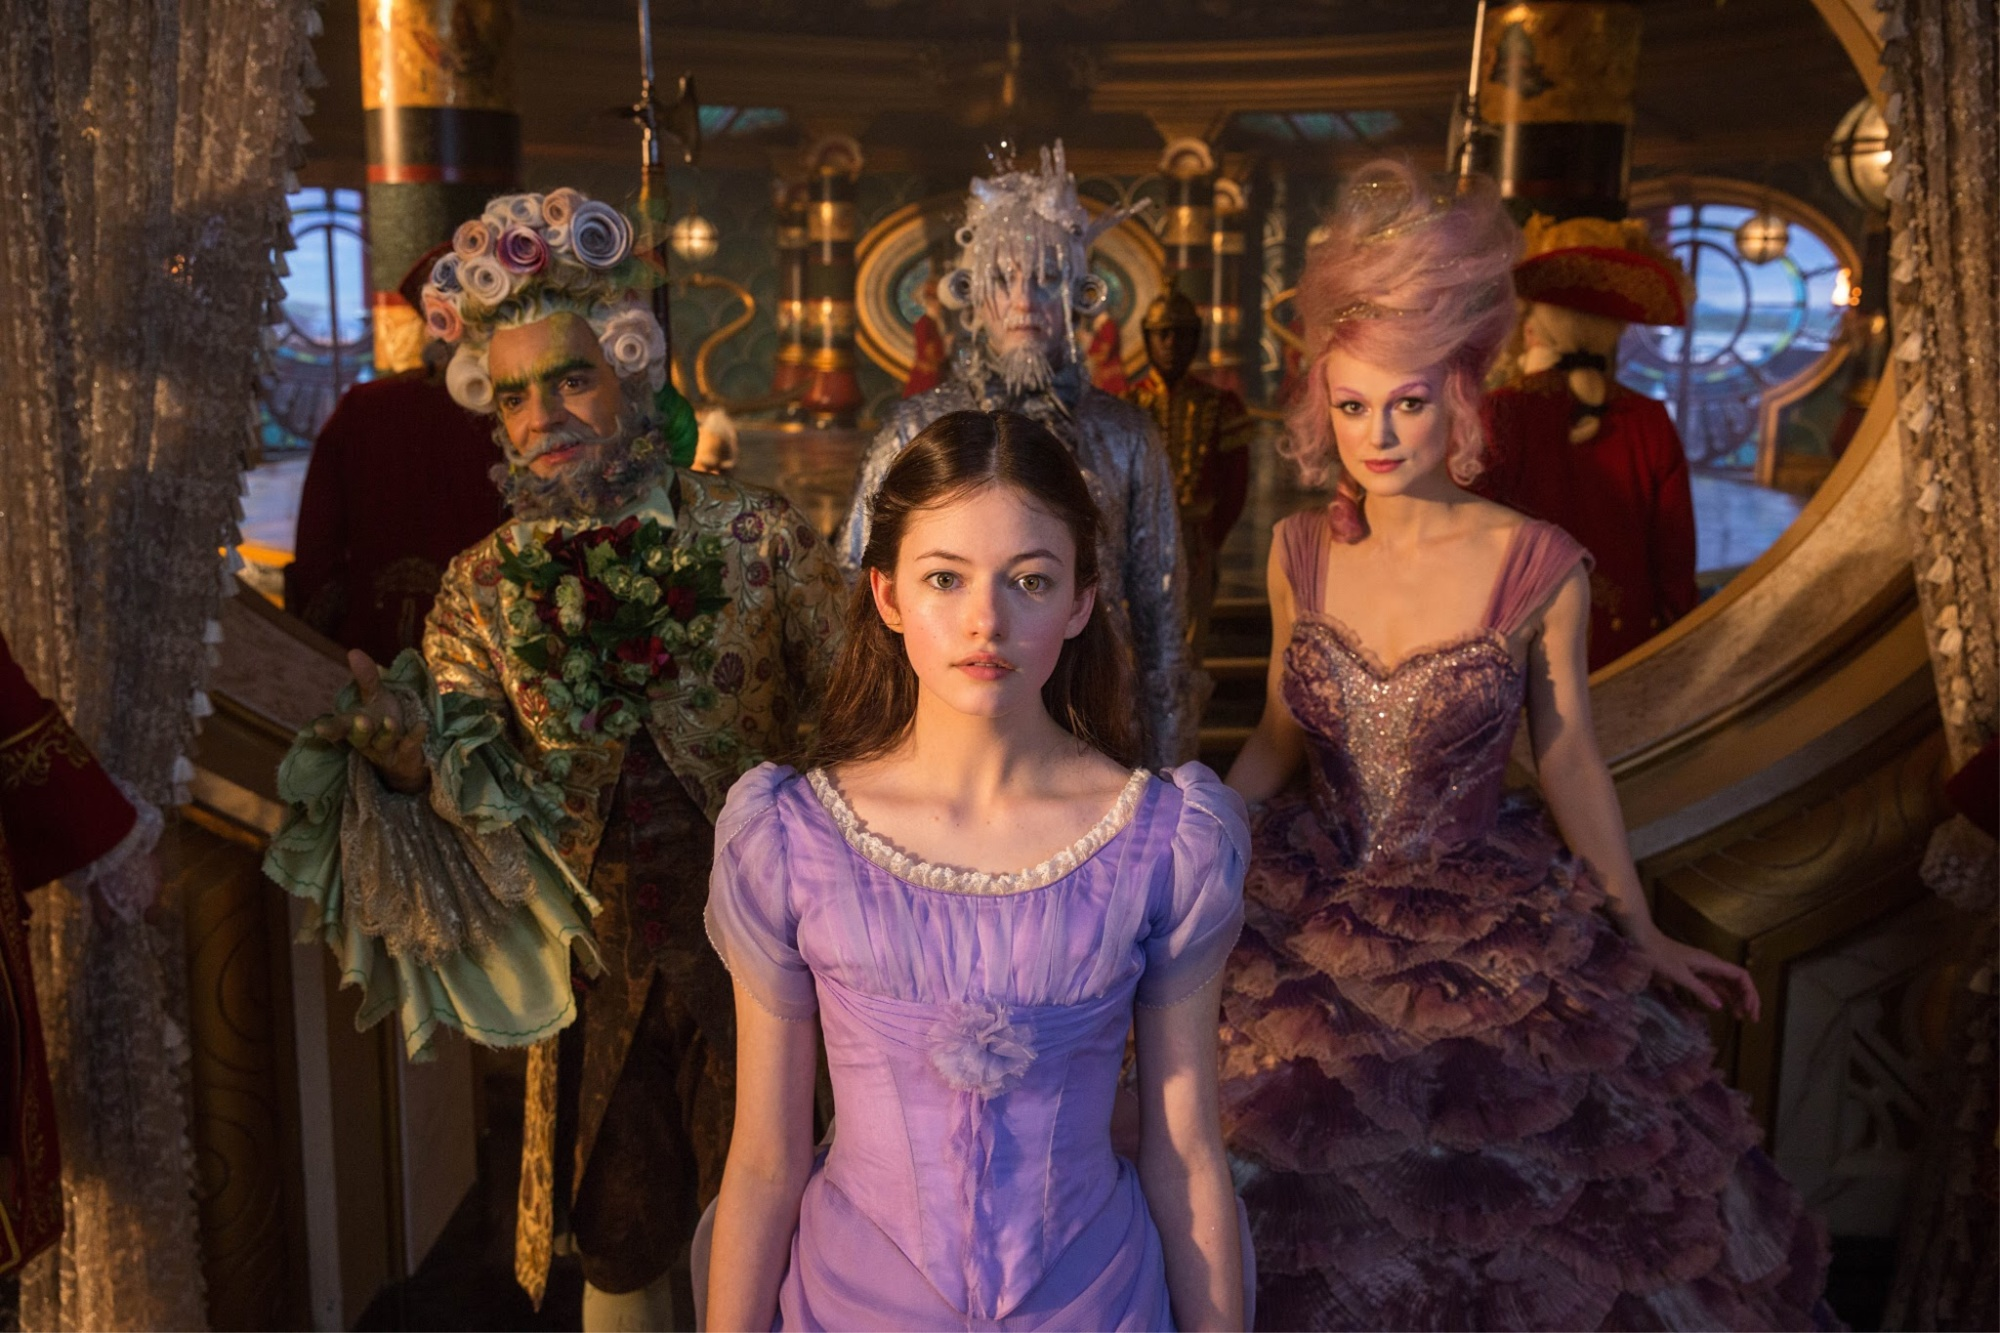 Clara and three of the four characters in charge of the four realms